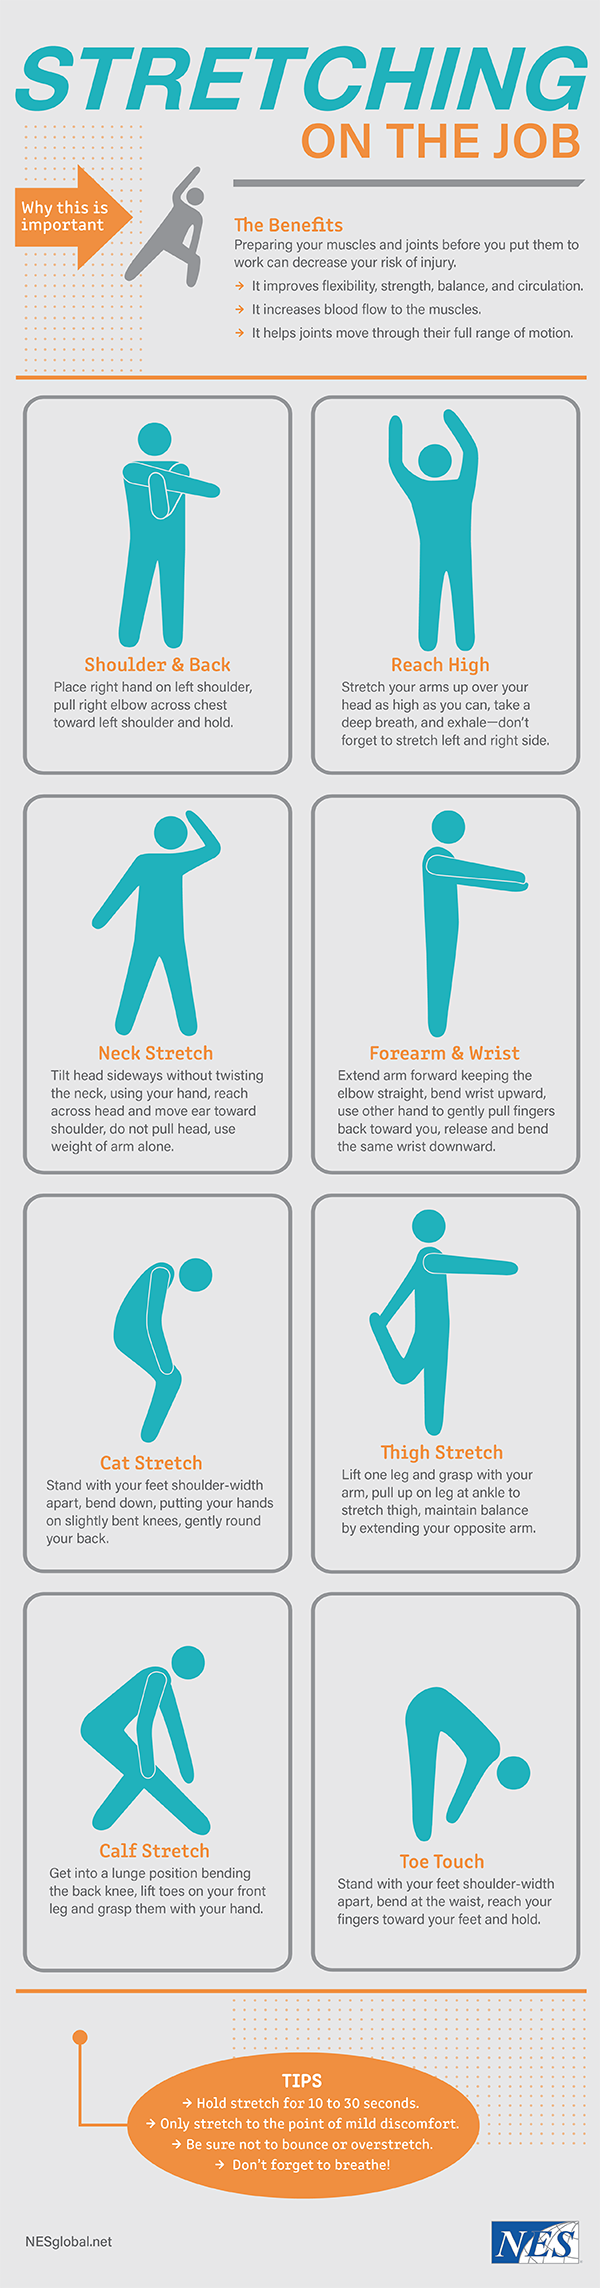 Stretching Infographic-05 copy